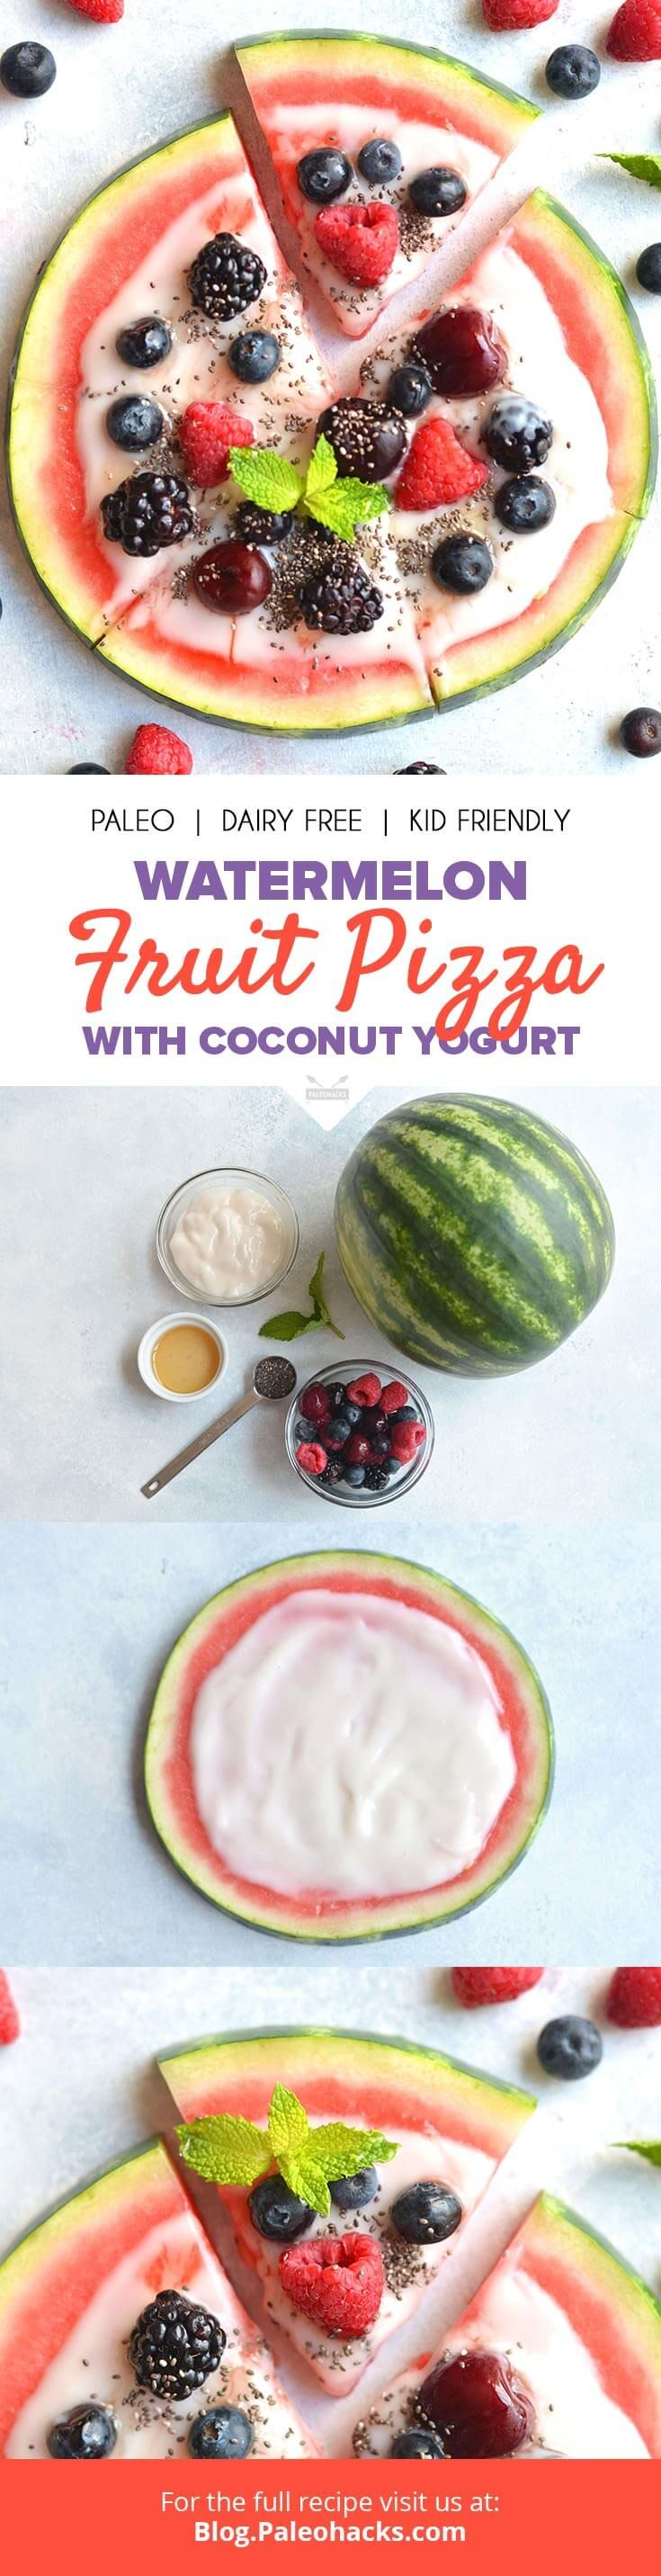 Sweet Watermelon Fruit Pizza topped with a homemade coconut yogurt and fresh berries for a dazzling summer dessert! Get the recipe here: http://paleo.co/watermelonpizzarcp